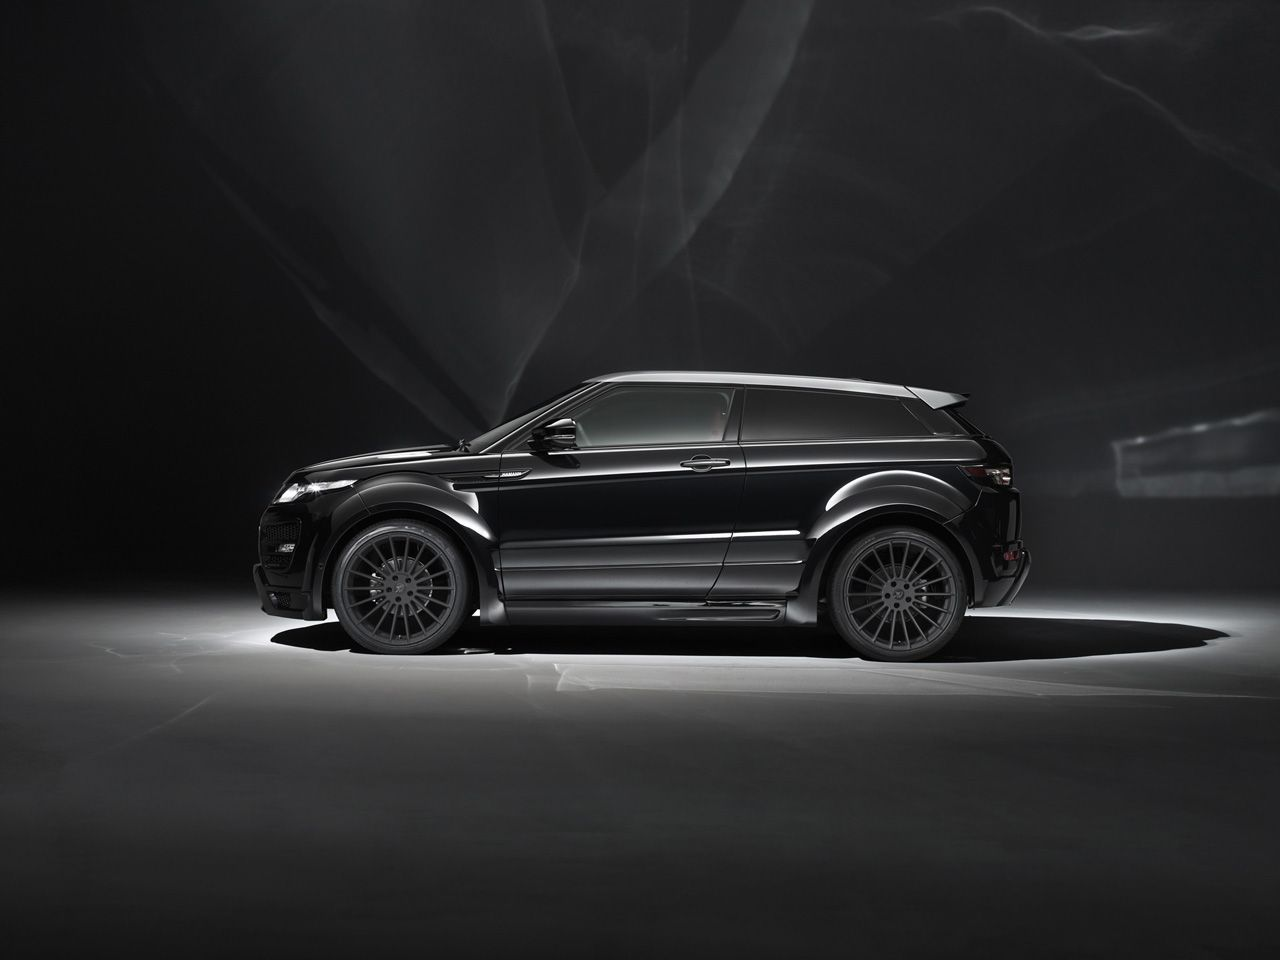 2011 land rover dc100 concept side 2 1280x960 wallpaper - 2012 Hamann Range Rover Evoque Suv Tuning D Wallpaper Background